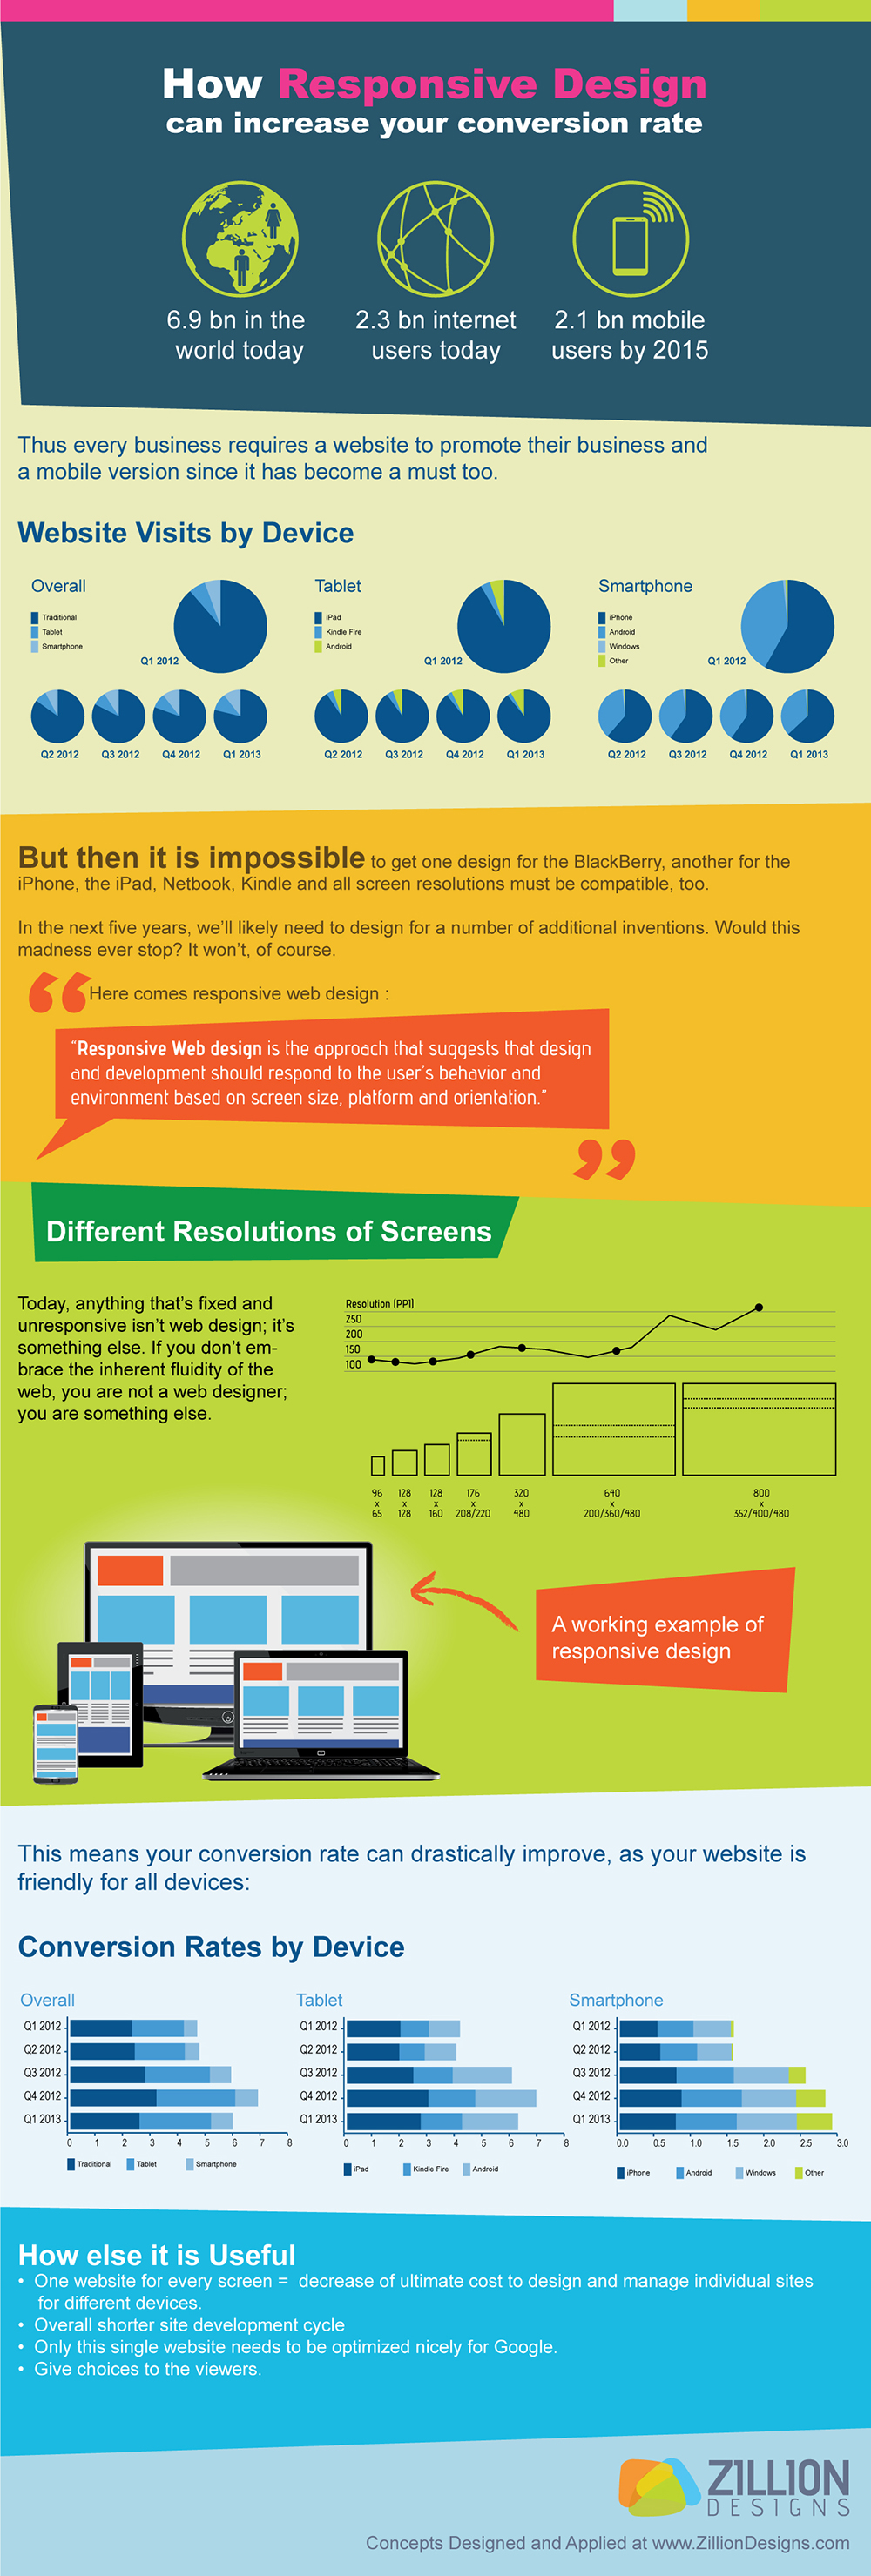 How Responsive Design Can Increase Your Conversion Rate